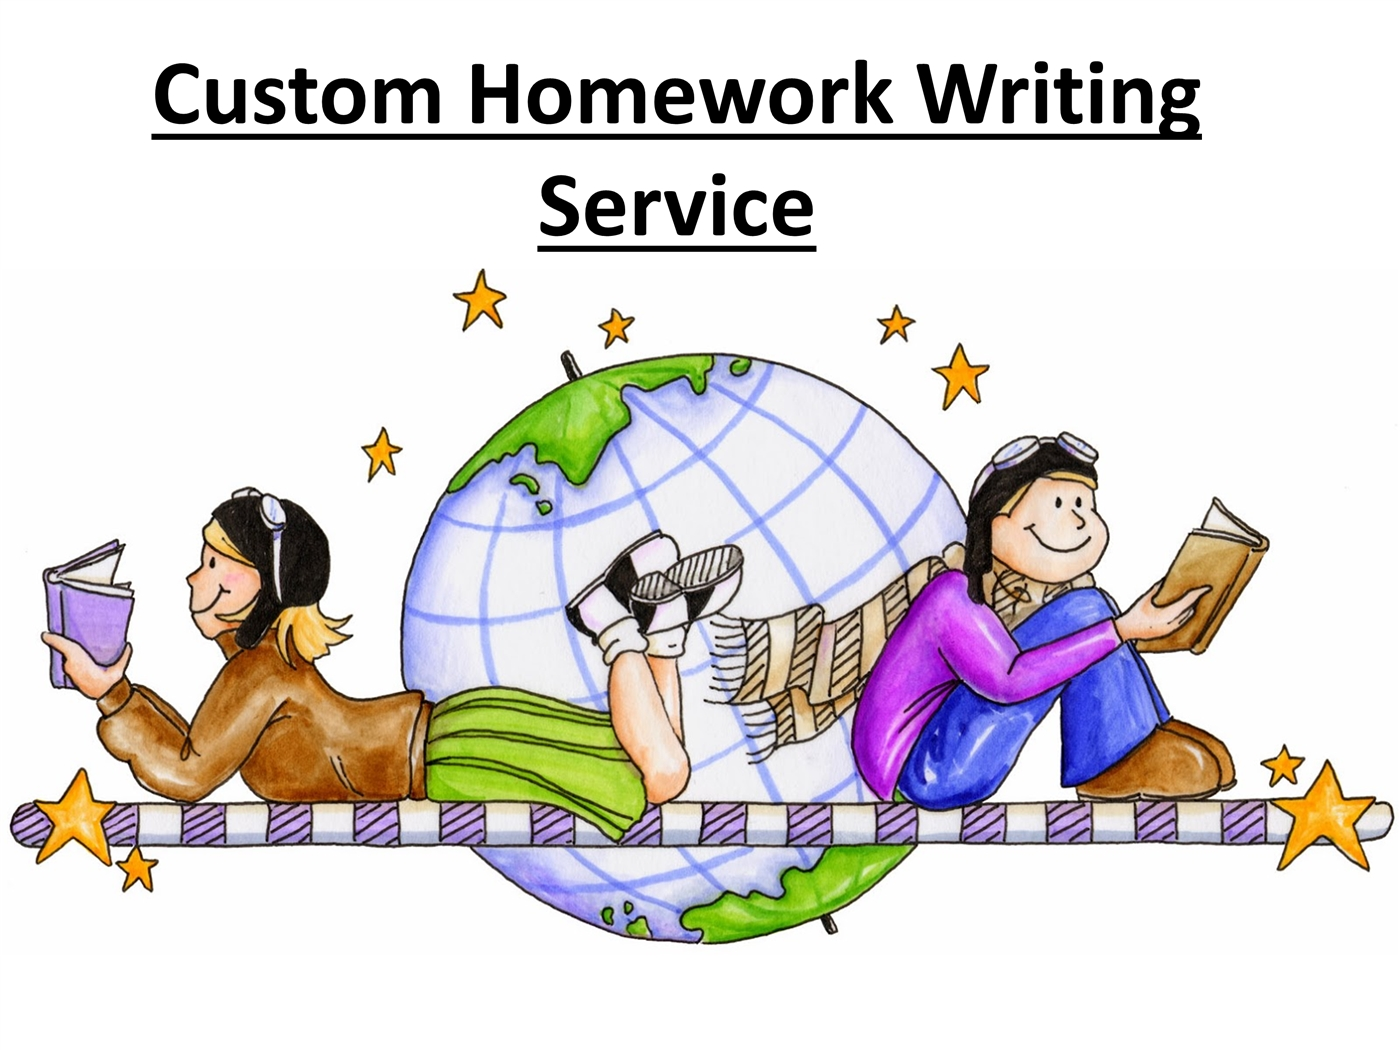 Custom homework writing